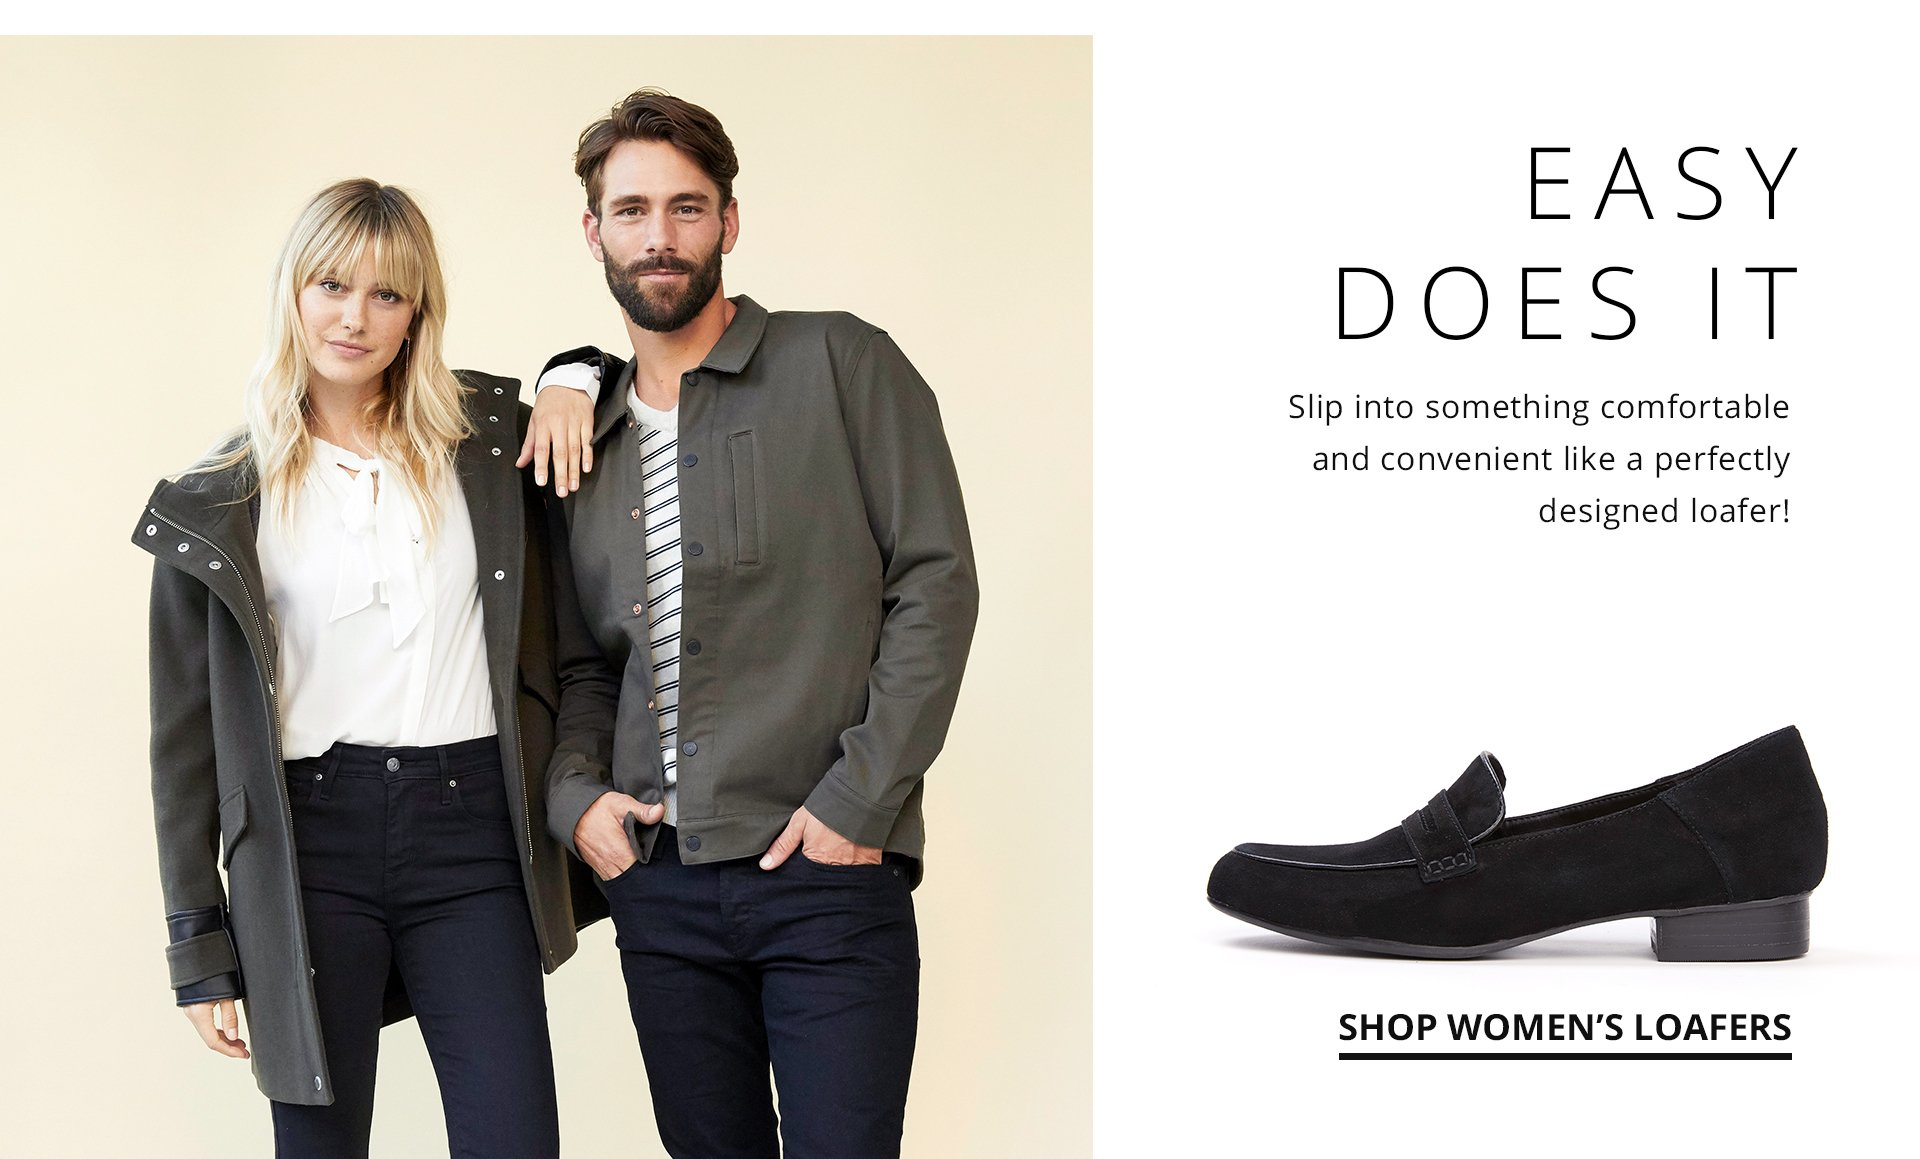 Shop Women's Loafers